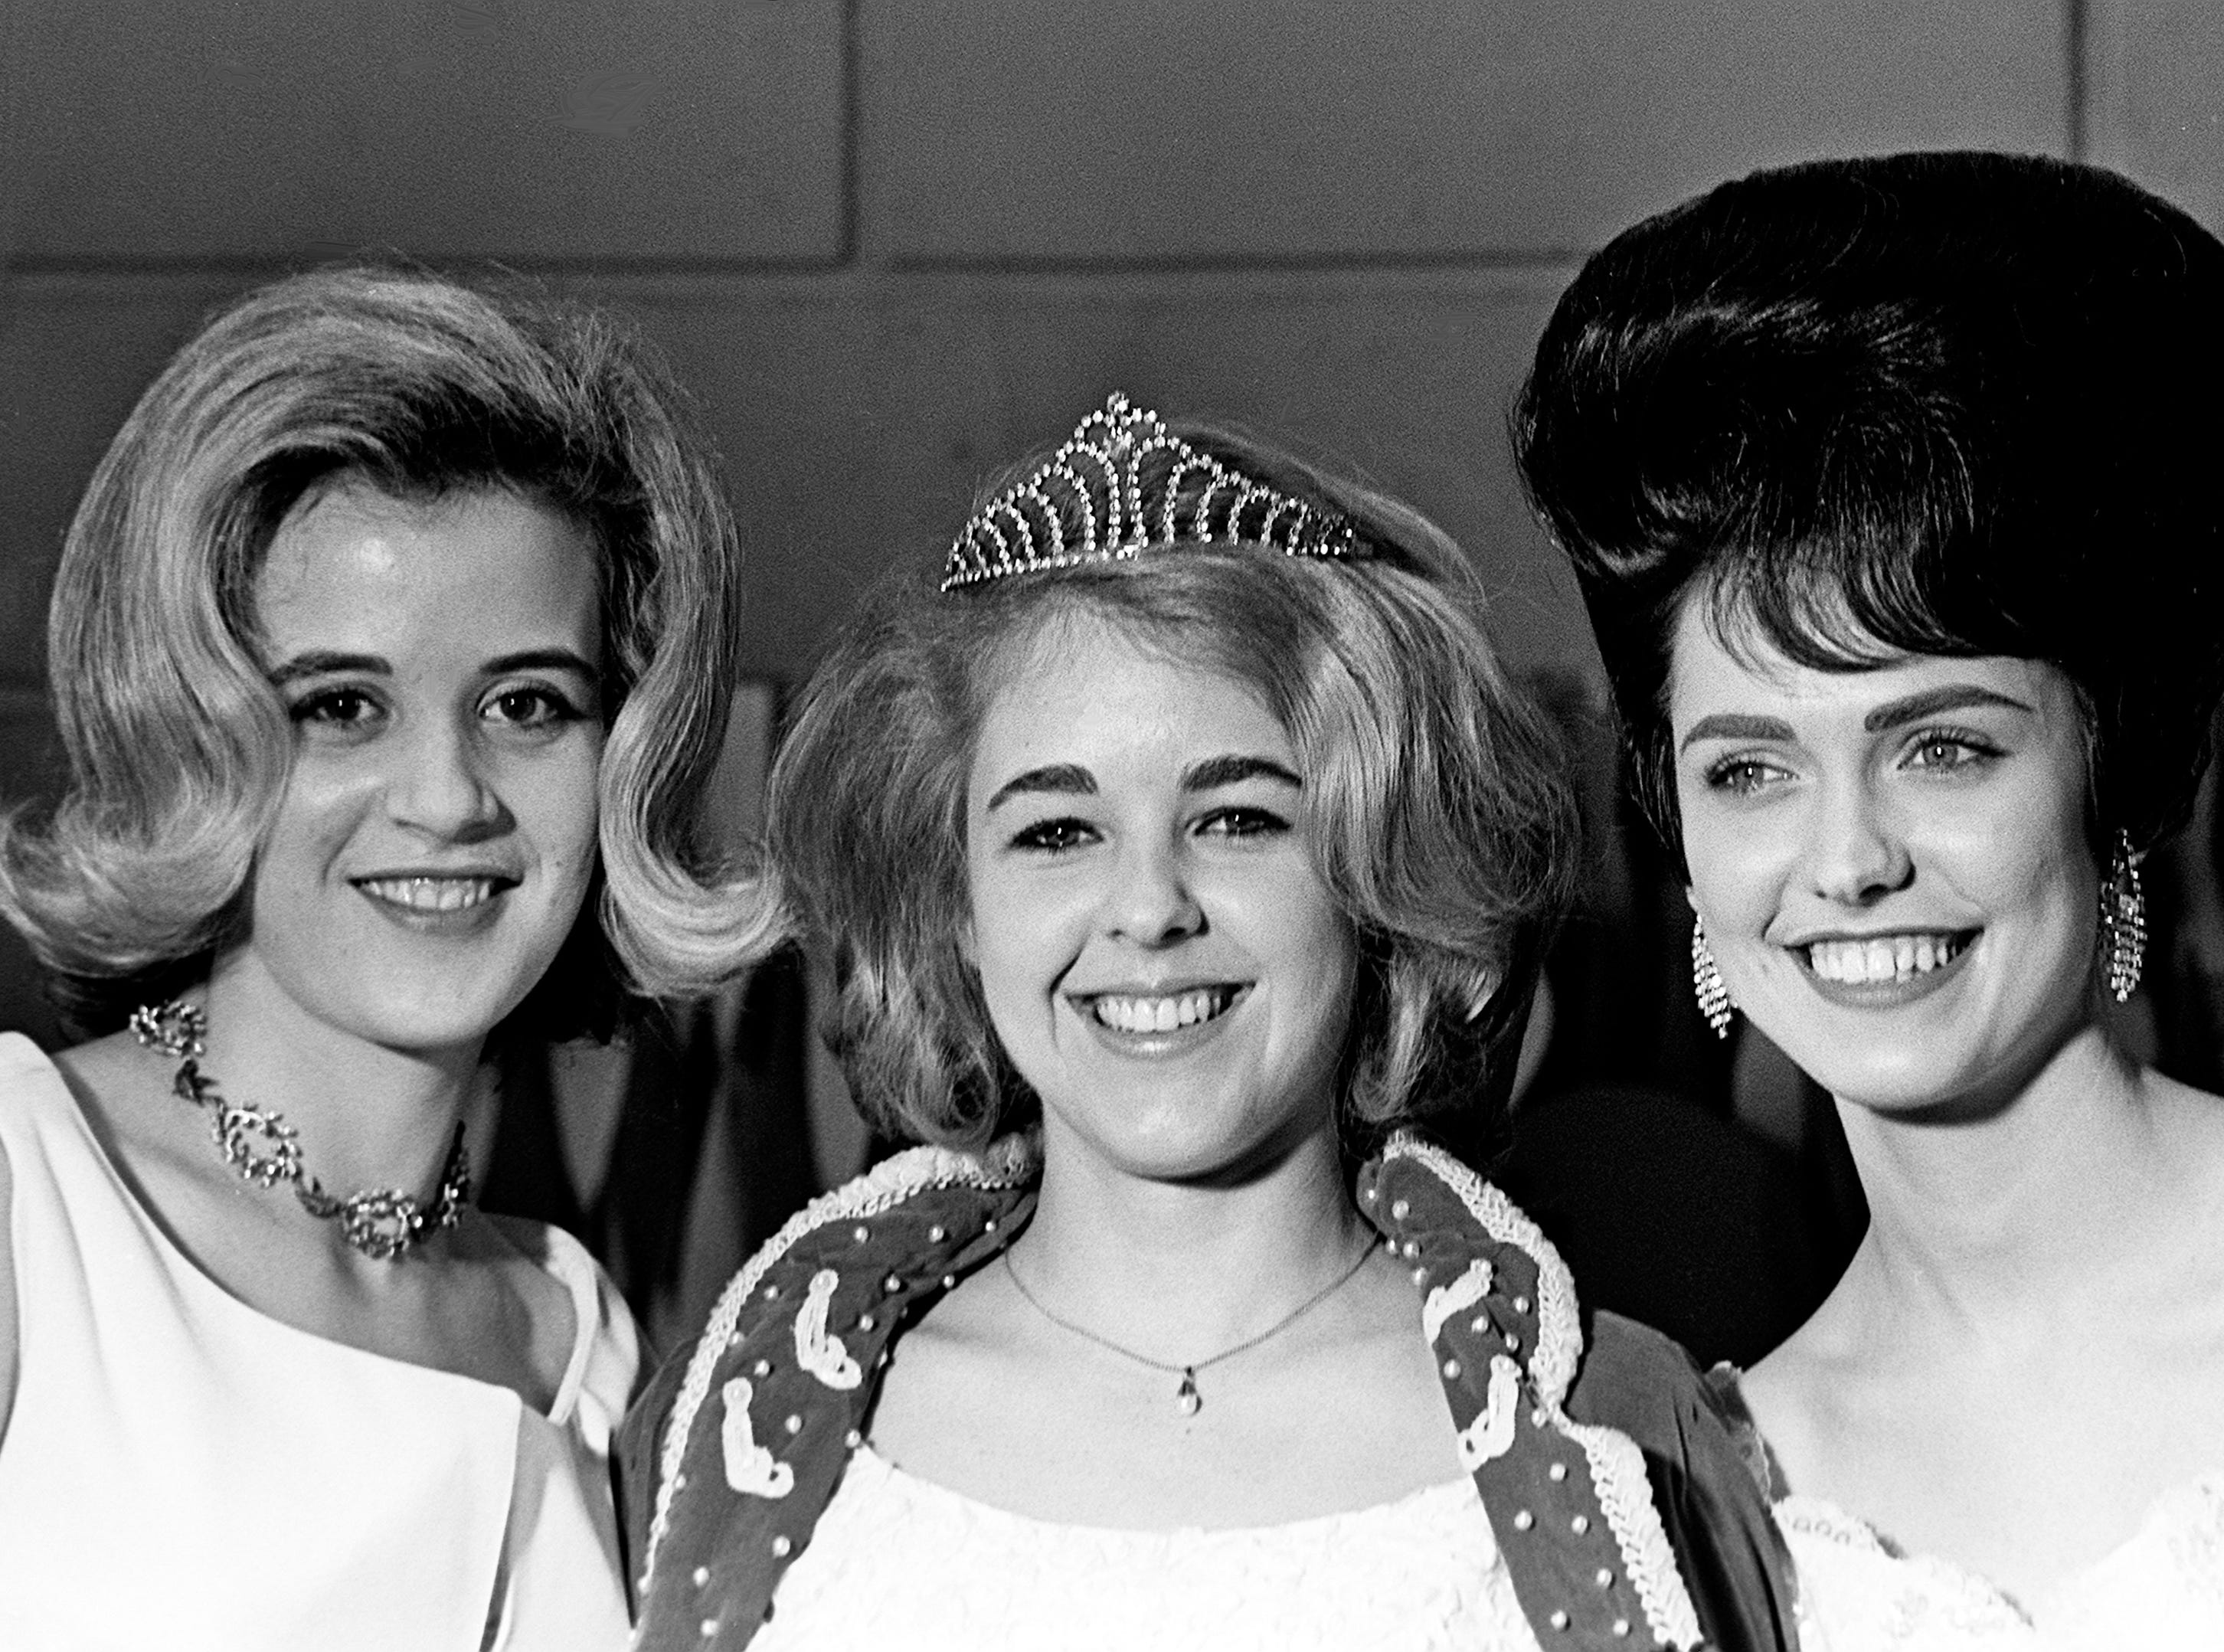 Pam Gardner, center, the 1965 Queen of Hearts, is flanked by runners-up Malinda Rice, left, and Linda Parrish, during the Queen of Hearts Beauty Pageant at the War Memorial Auditorium on Feb. 11, 1965. The upcoming pageant and Heart Fund Ball, which the queen will reign, are sponsored by Gamma Kappa Chapter of Beta Sigma Phi Sorority to benefit the Middle Tennessee Heart Association.